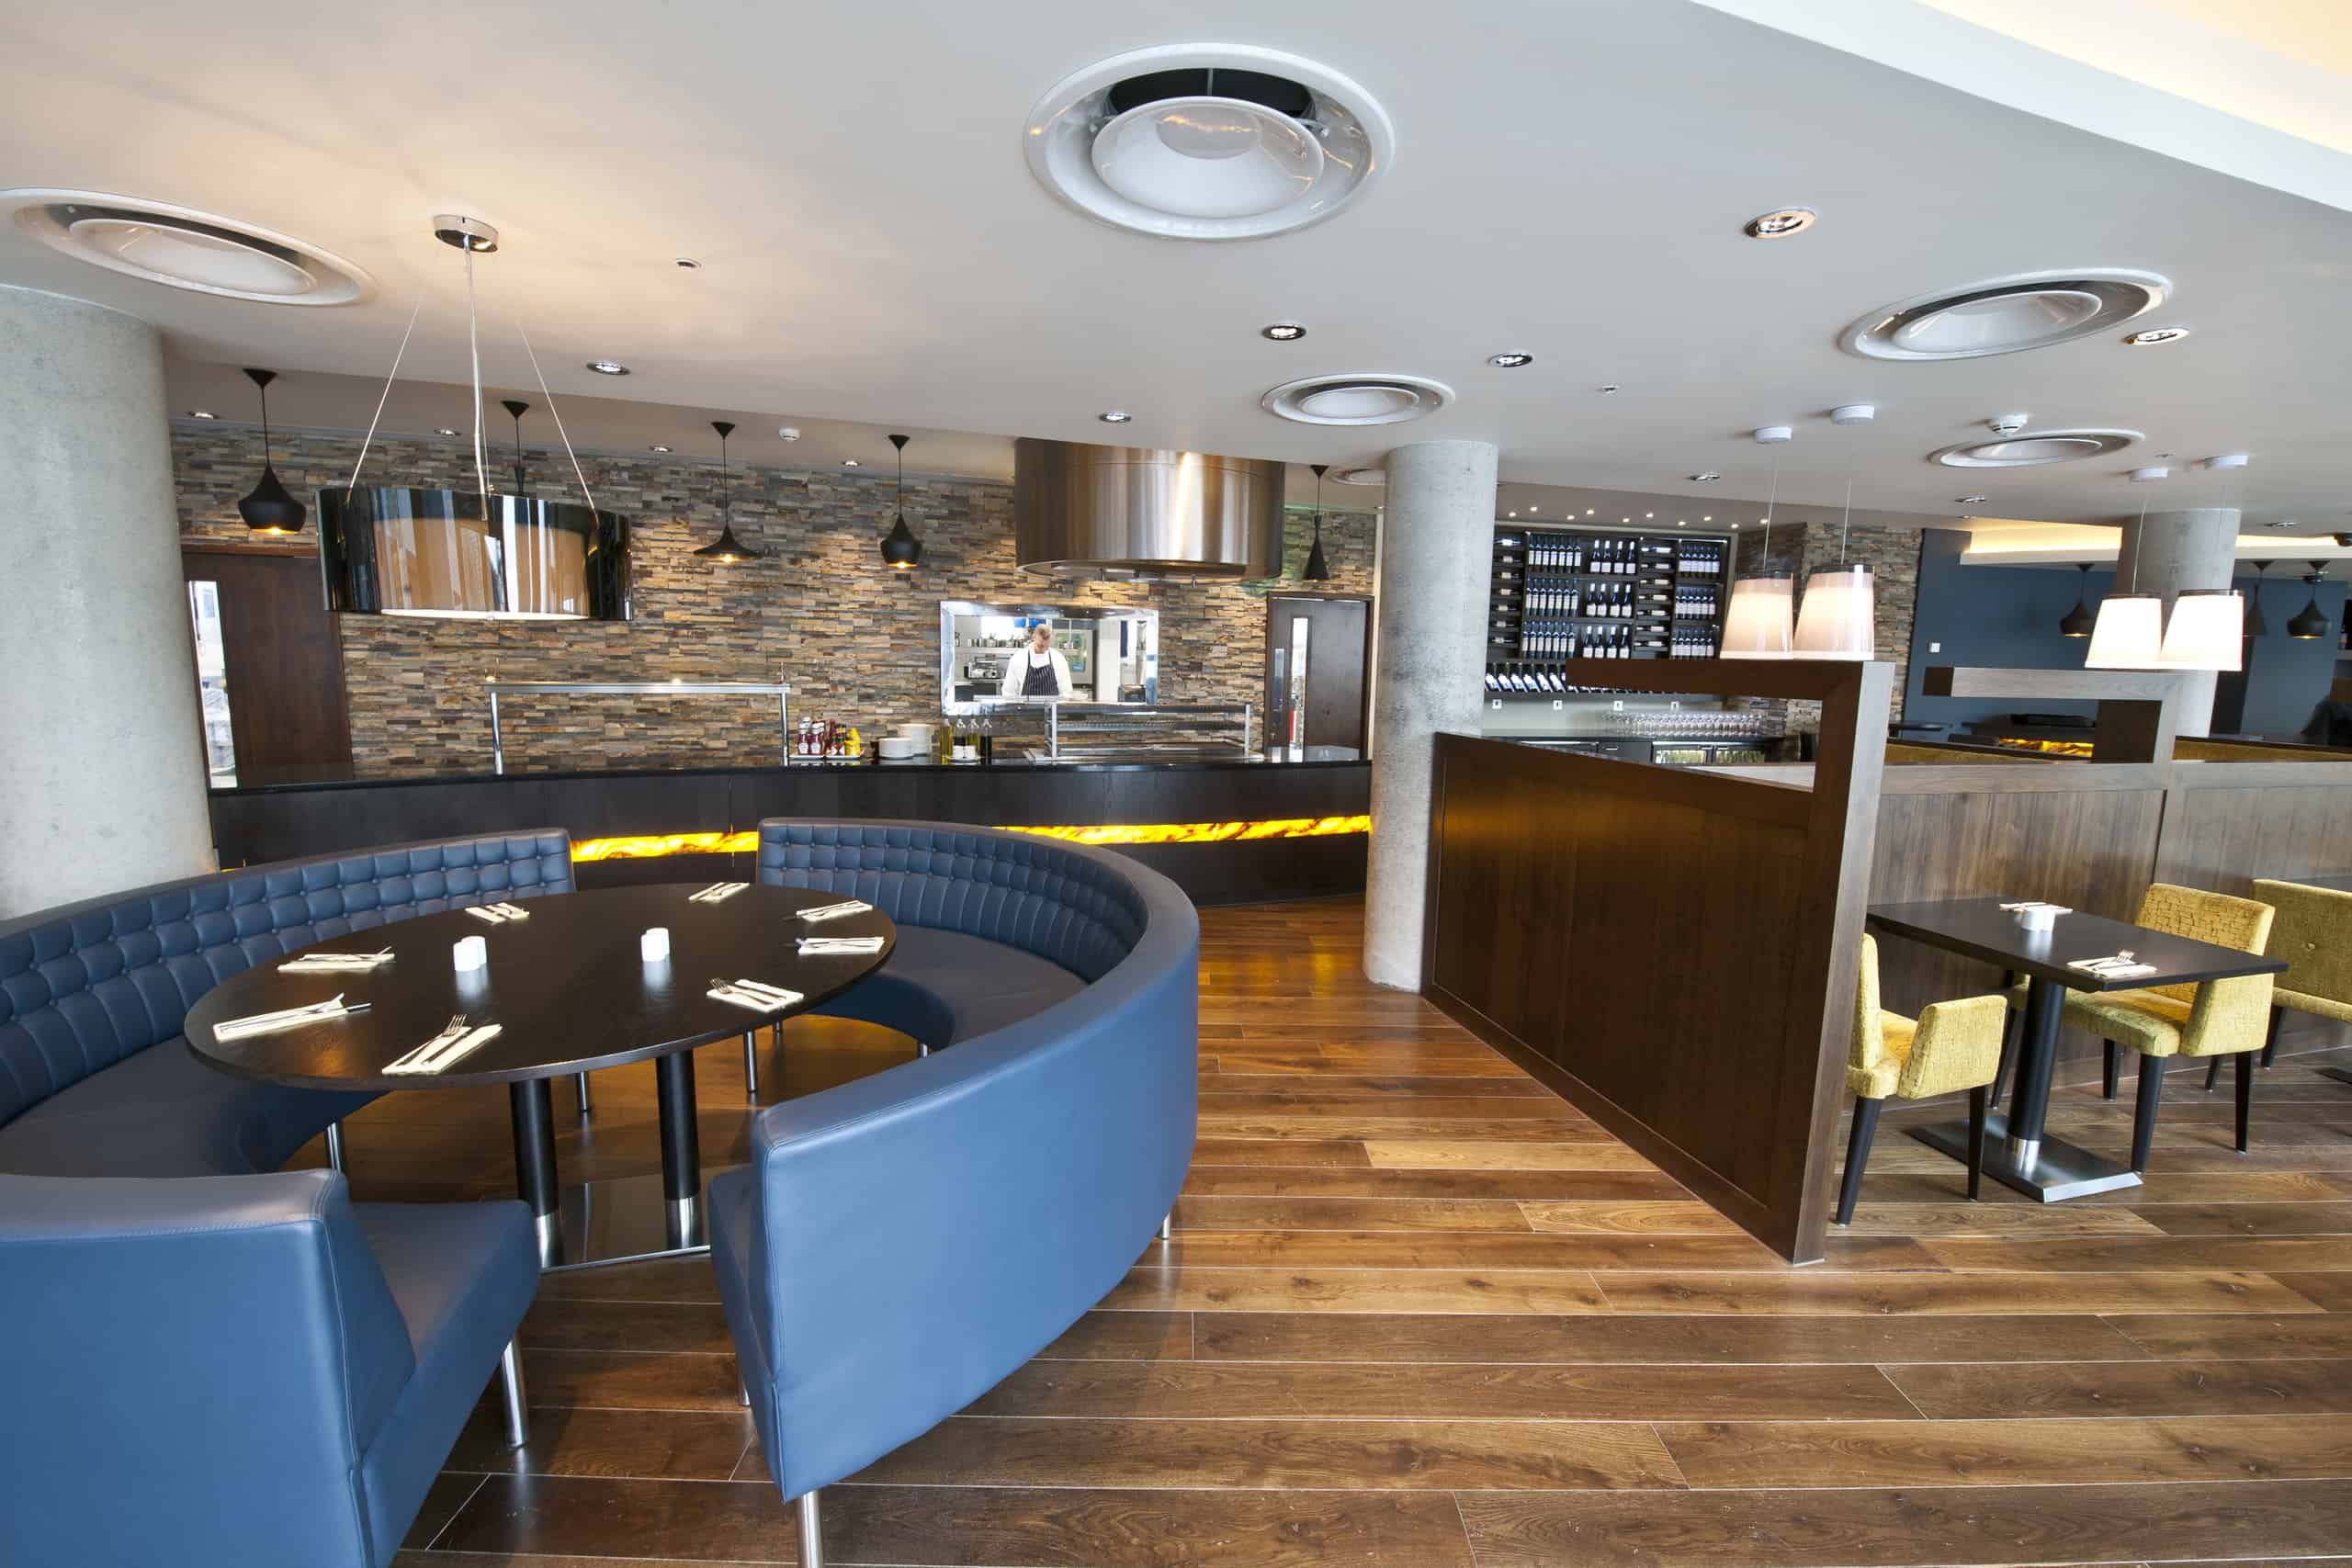 Top Tips on Commercial Kitchen Design in Hotels